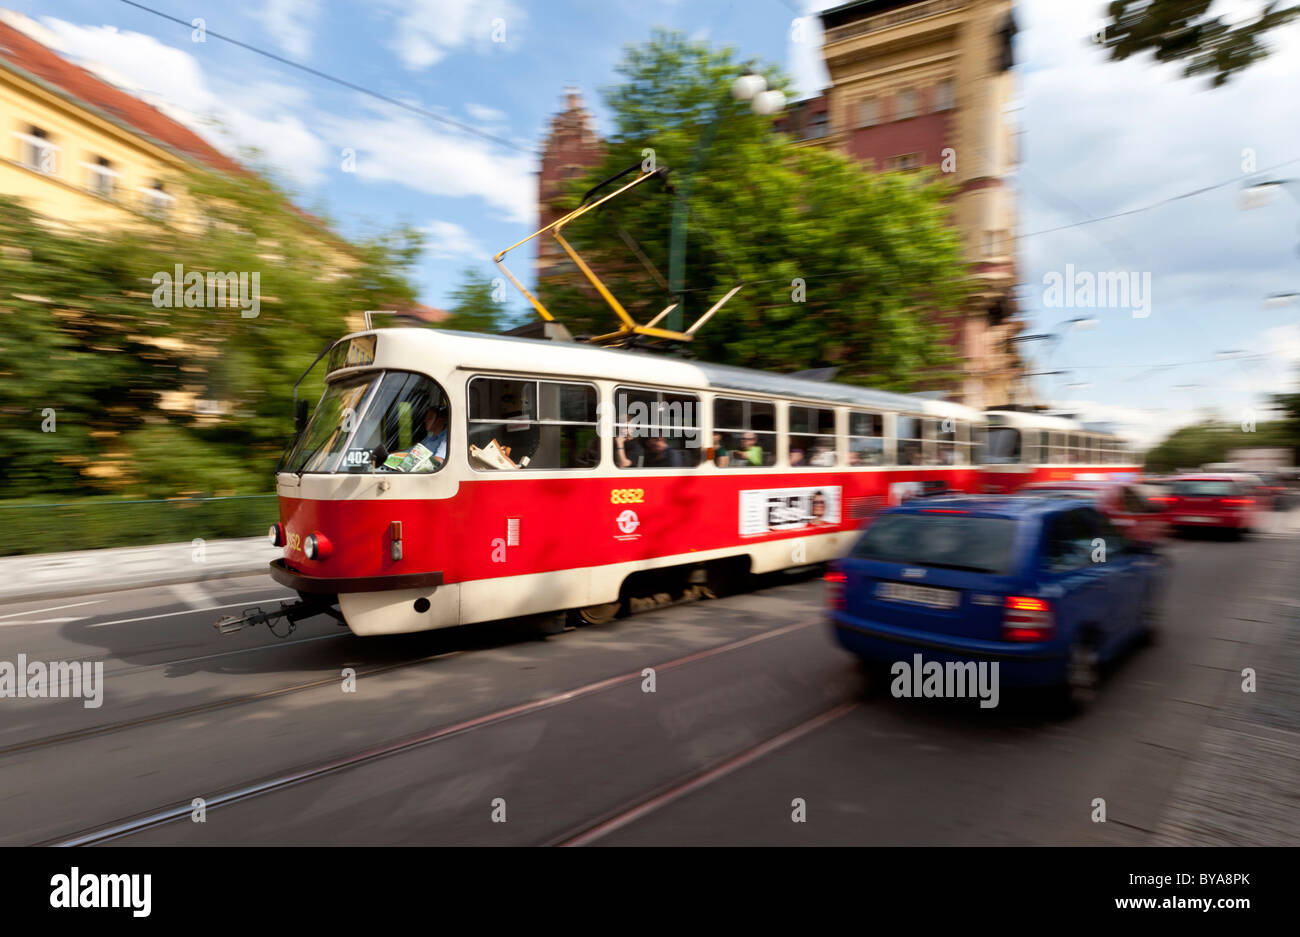 Tram in the historic town of Prague, Czech Republic, Europe - Stock Image